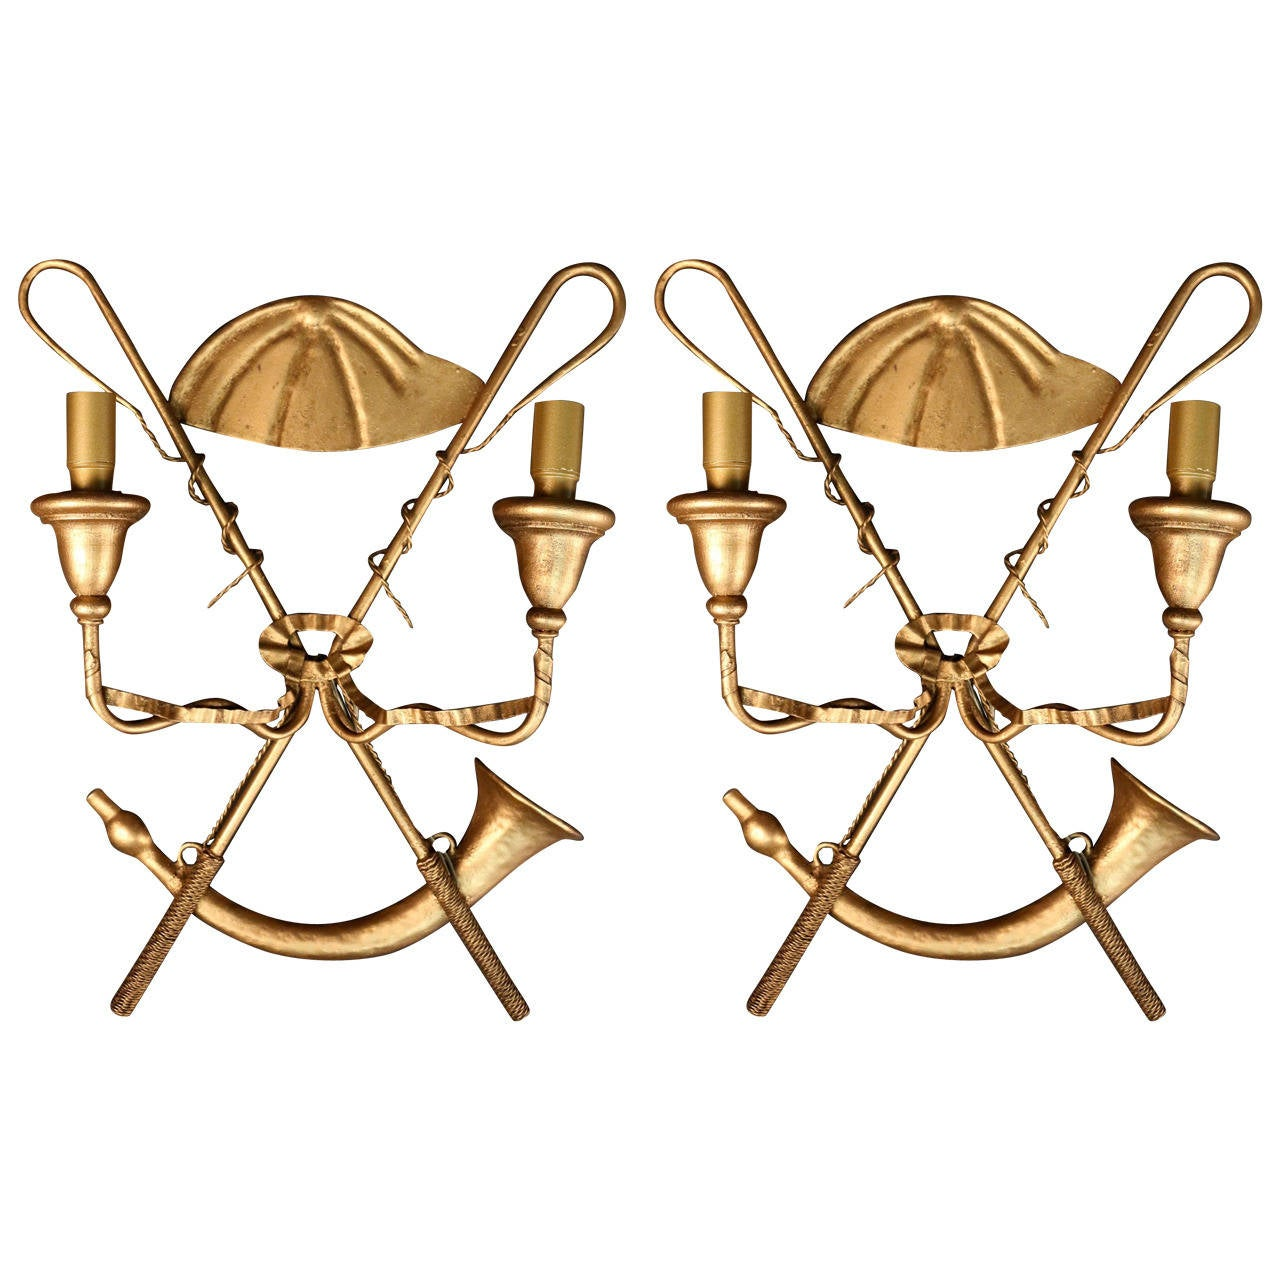 Pair of 1970s 'Hunting Horn' Sconces by Miason FlorArt